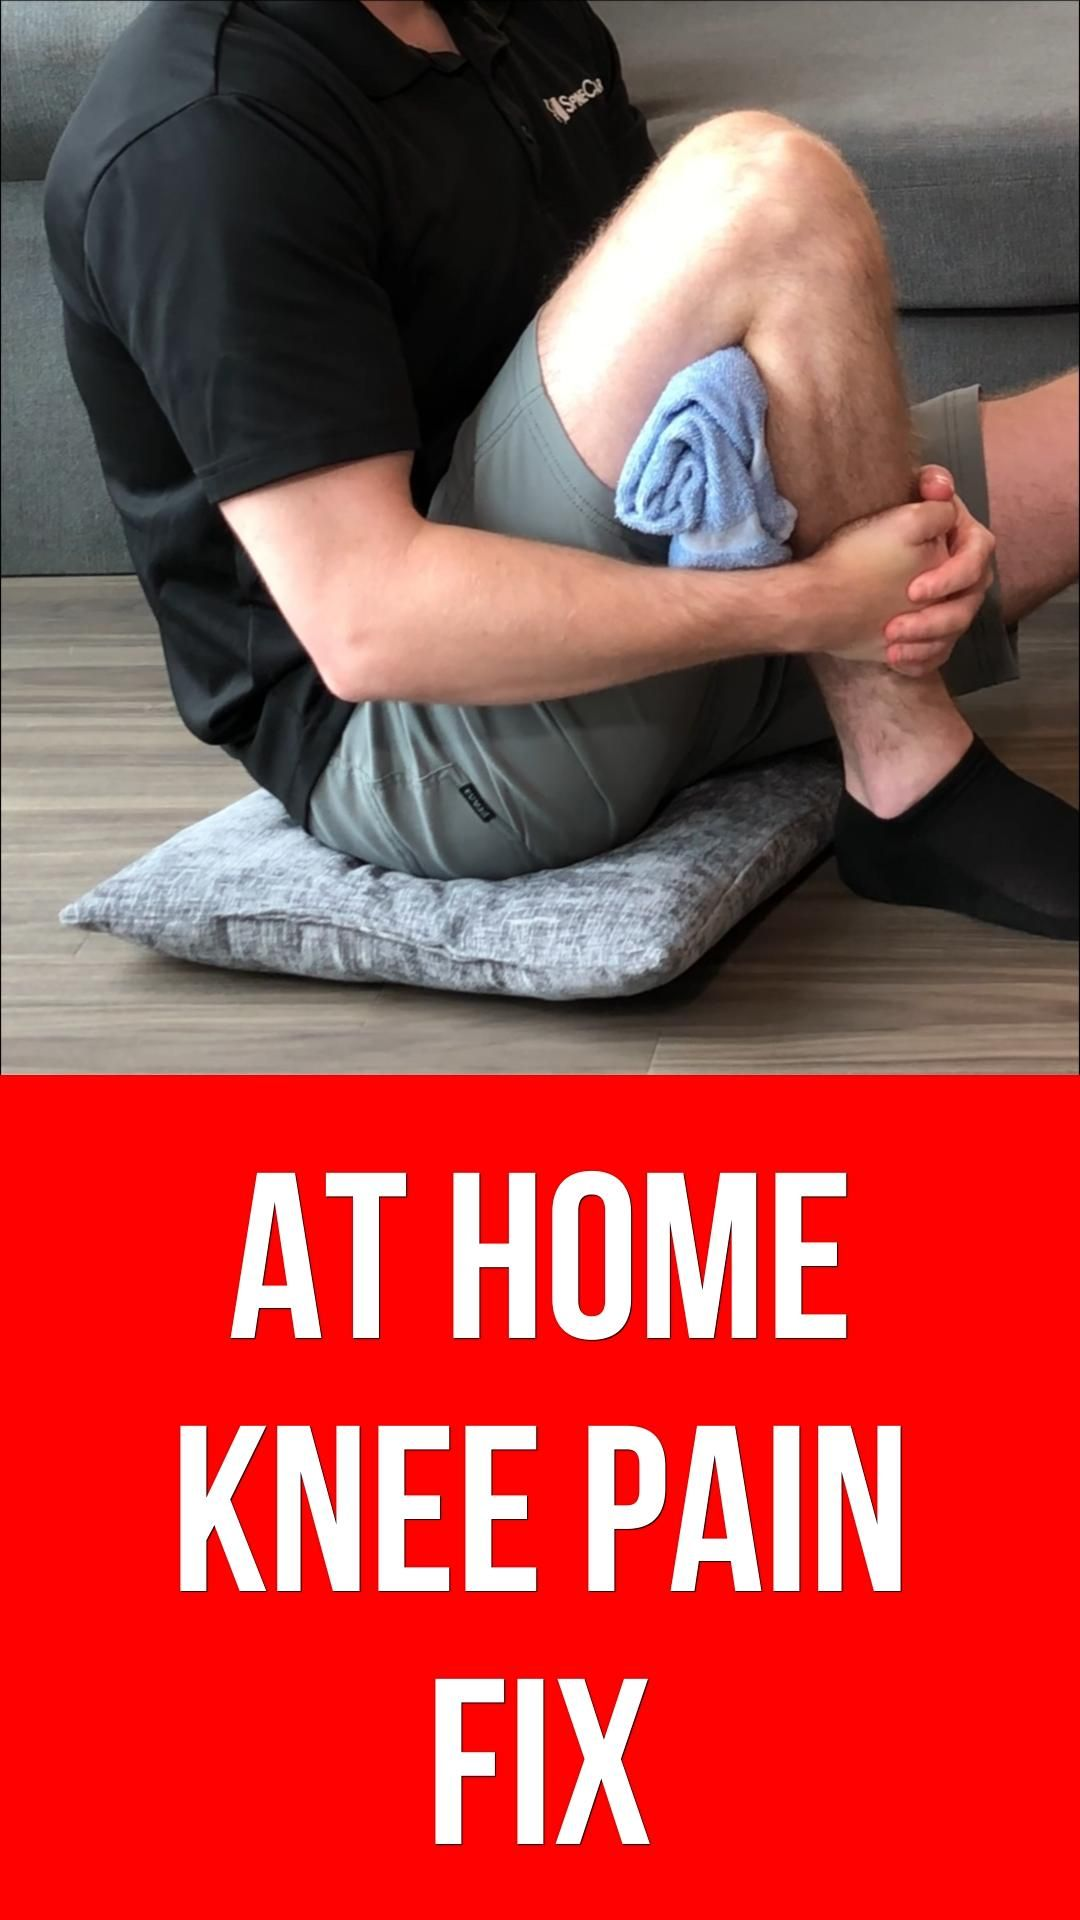 31+ Traction for knee pain ideas in 2021